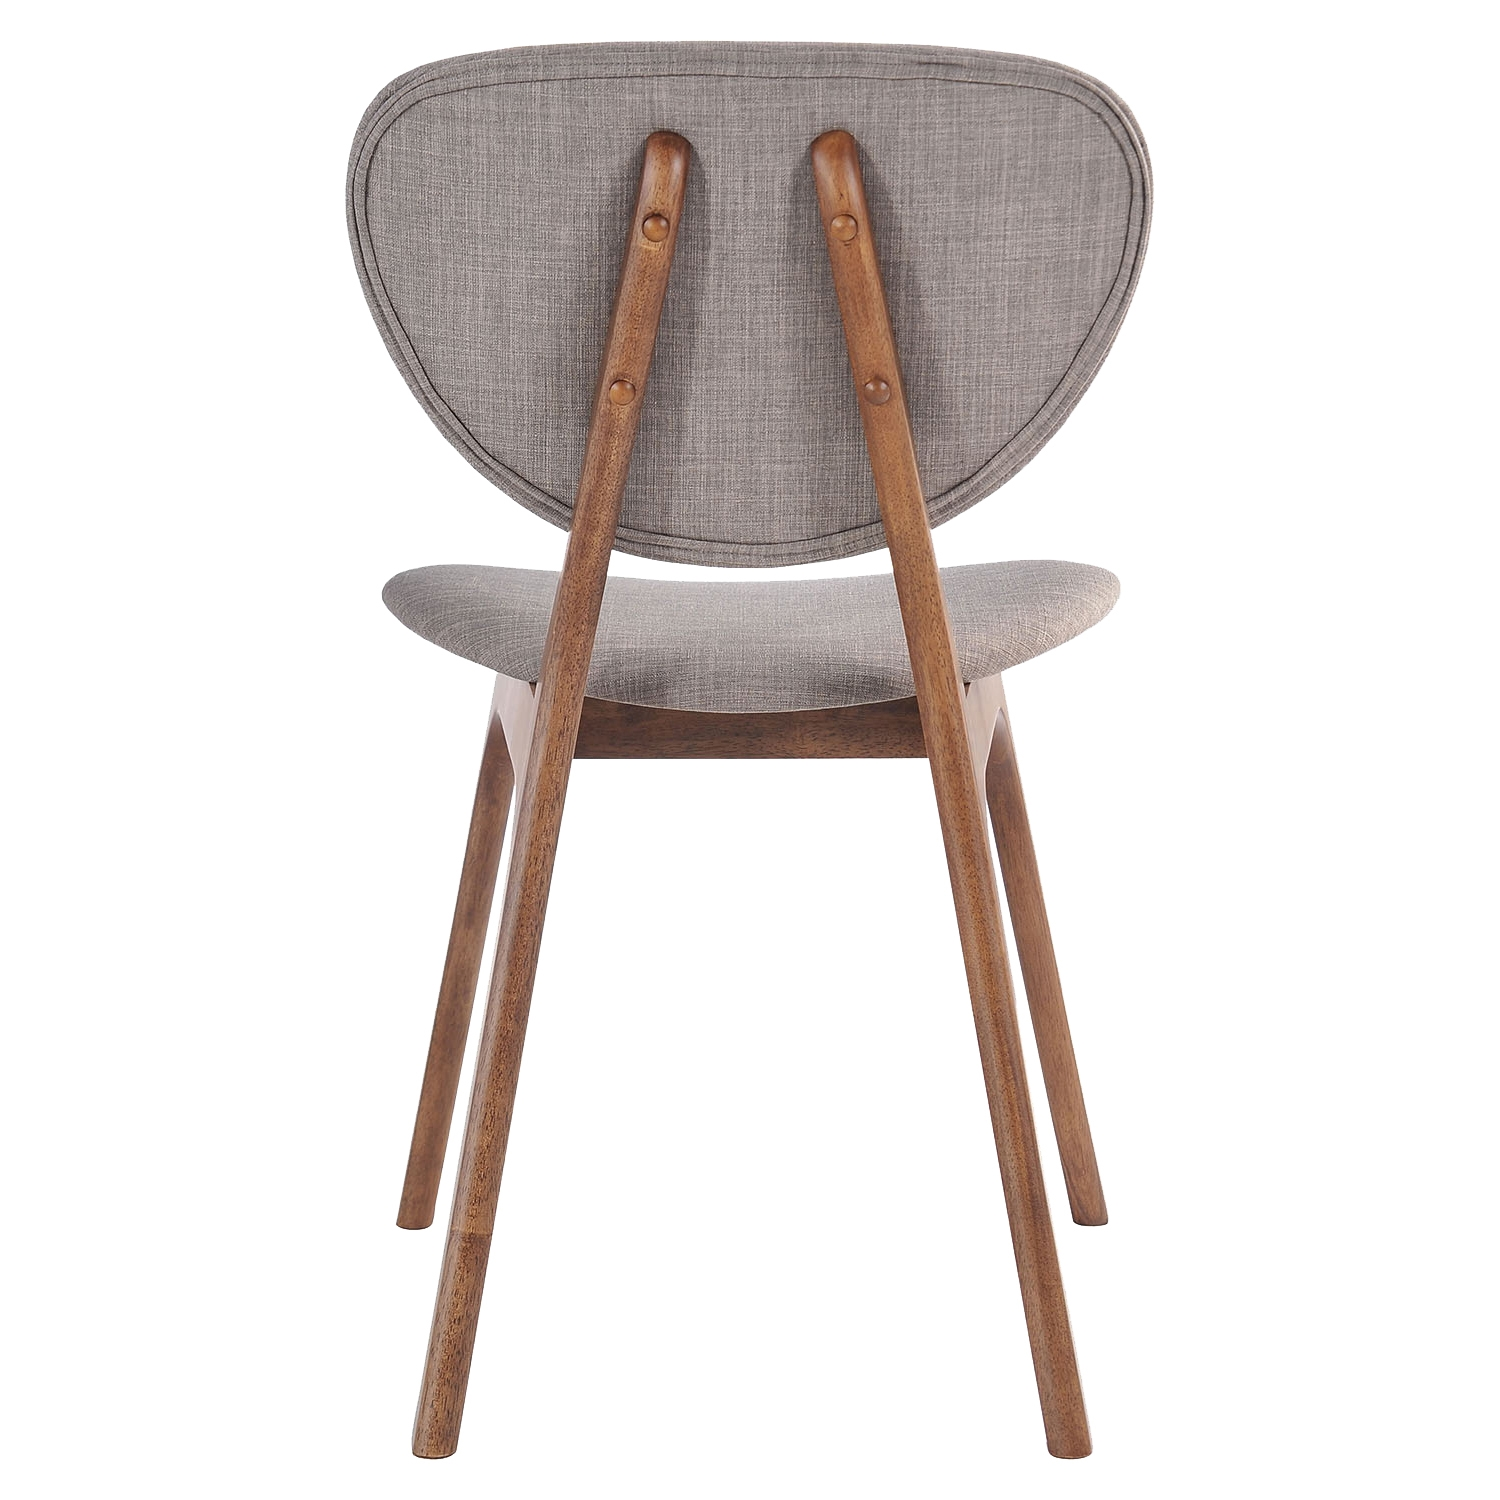 Omni Dove Gray Dining Chair - ZM-100114